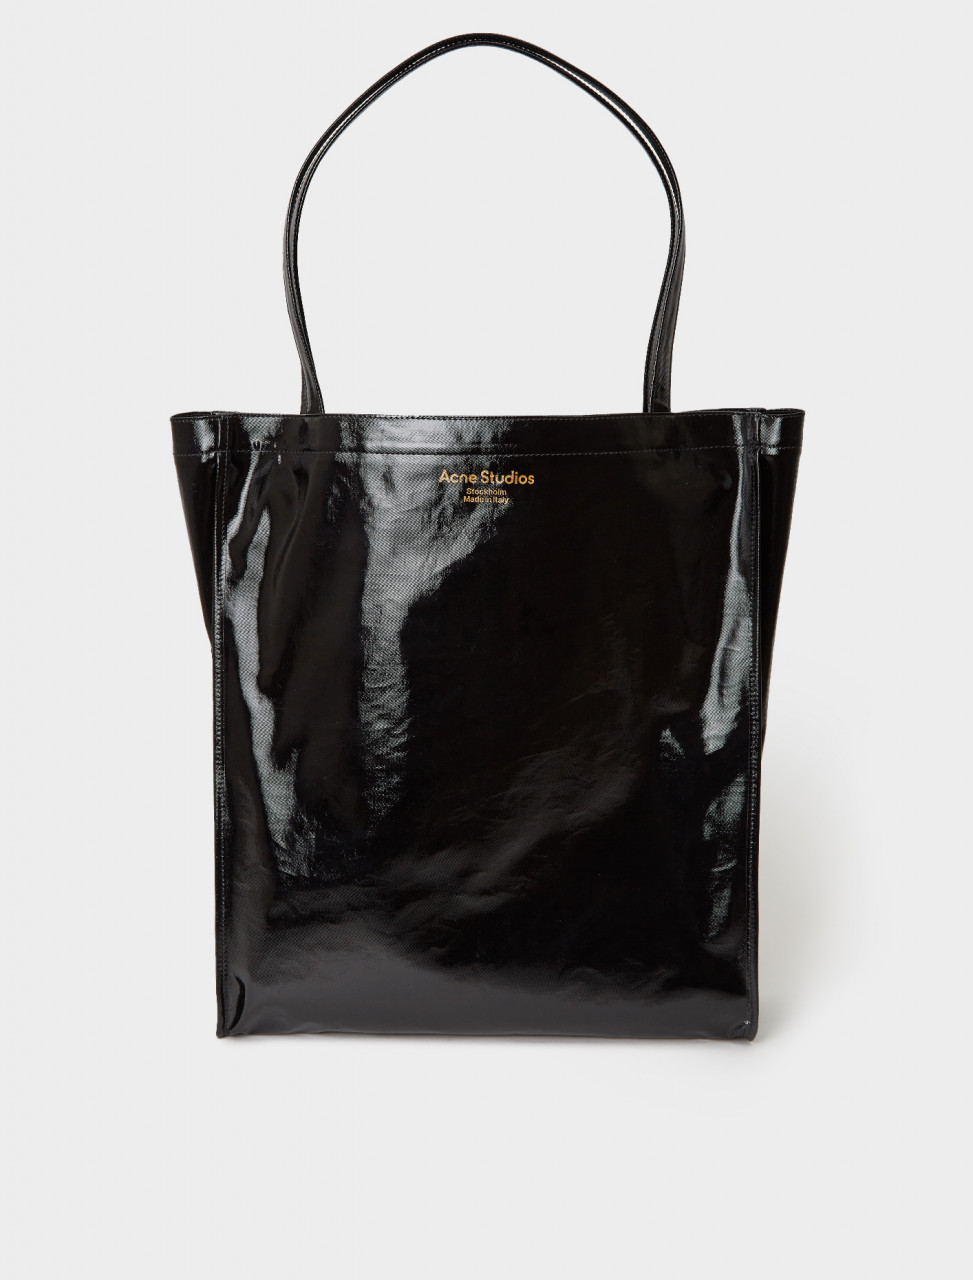 C10079-900 ACNE STUDIOS TOTE BAG BLACK